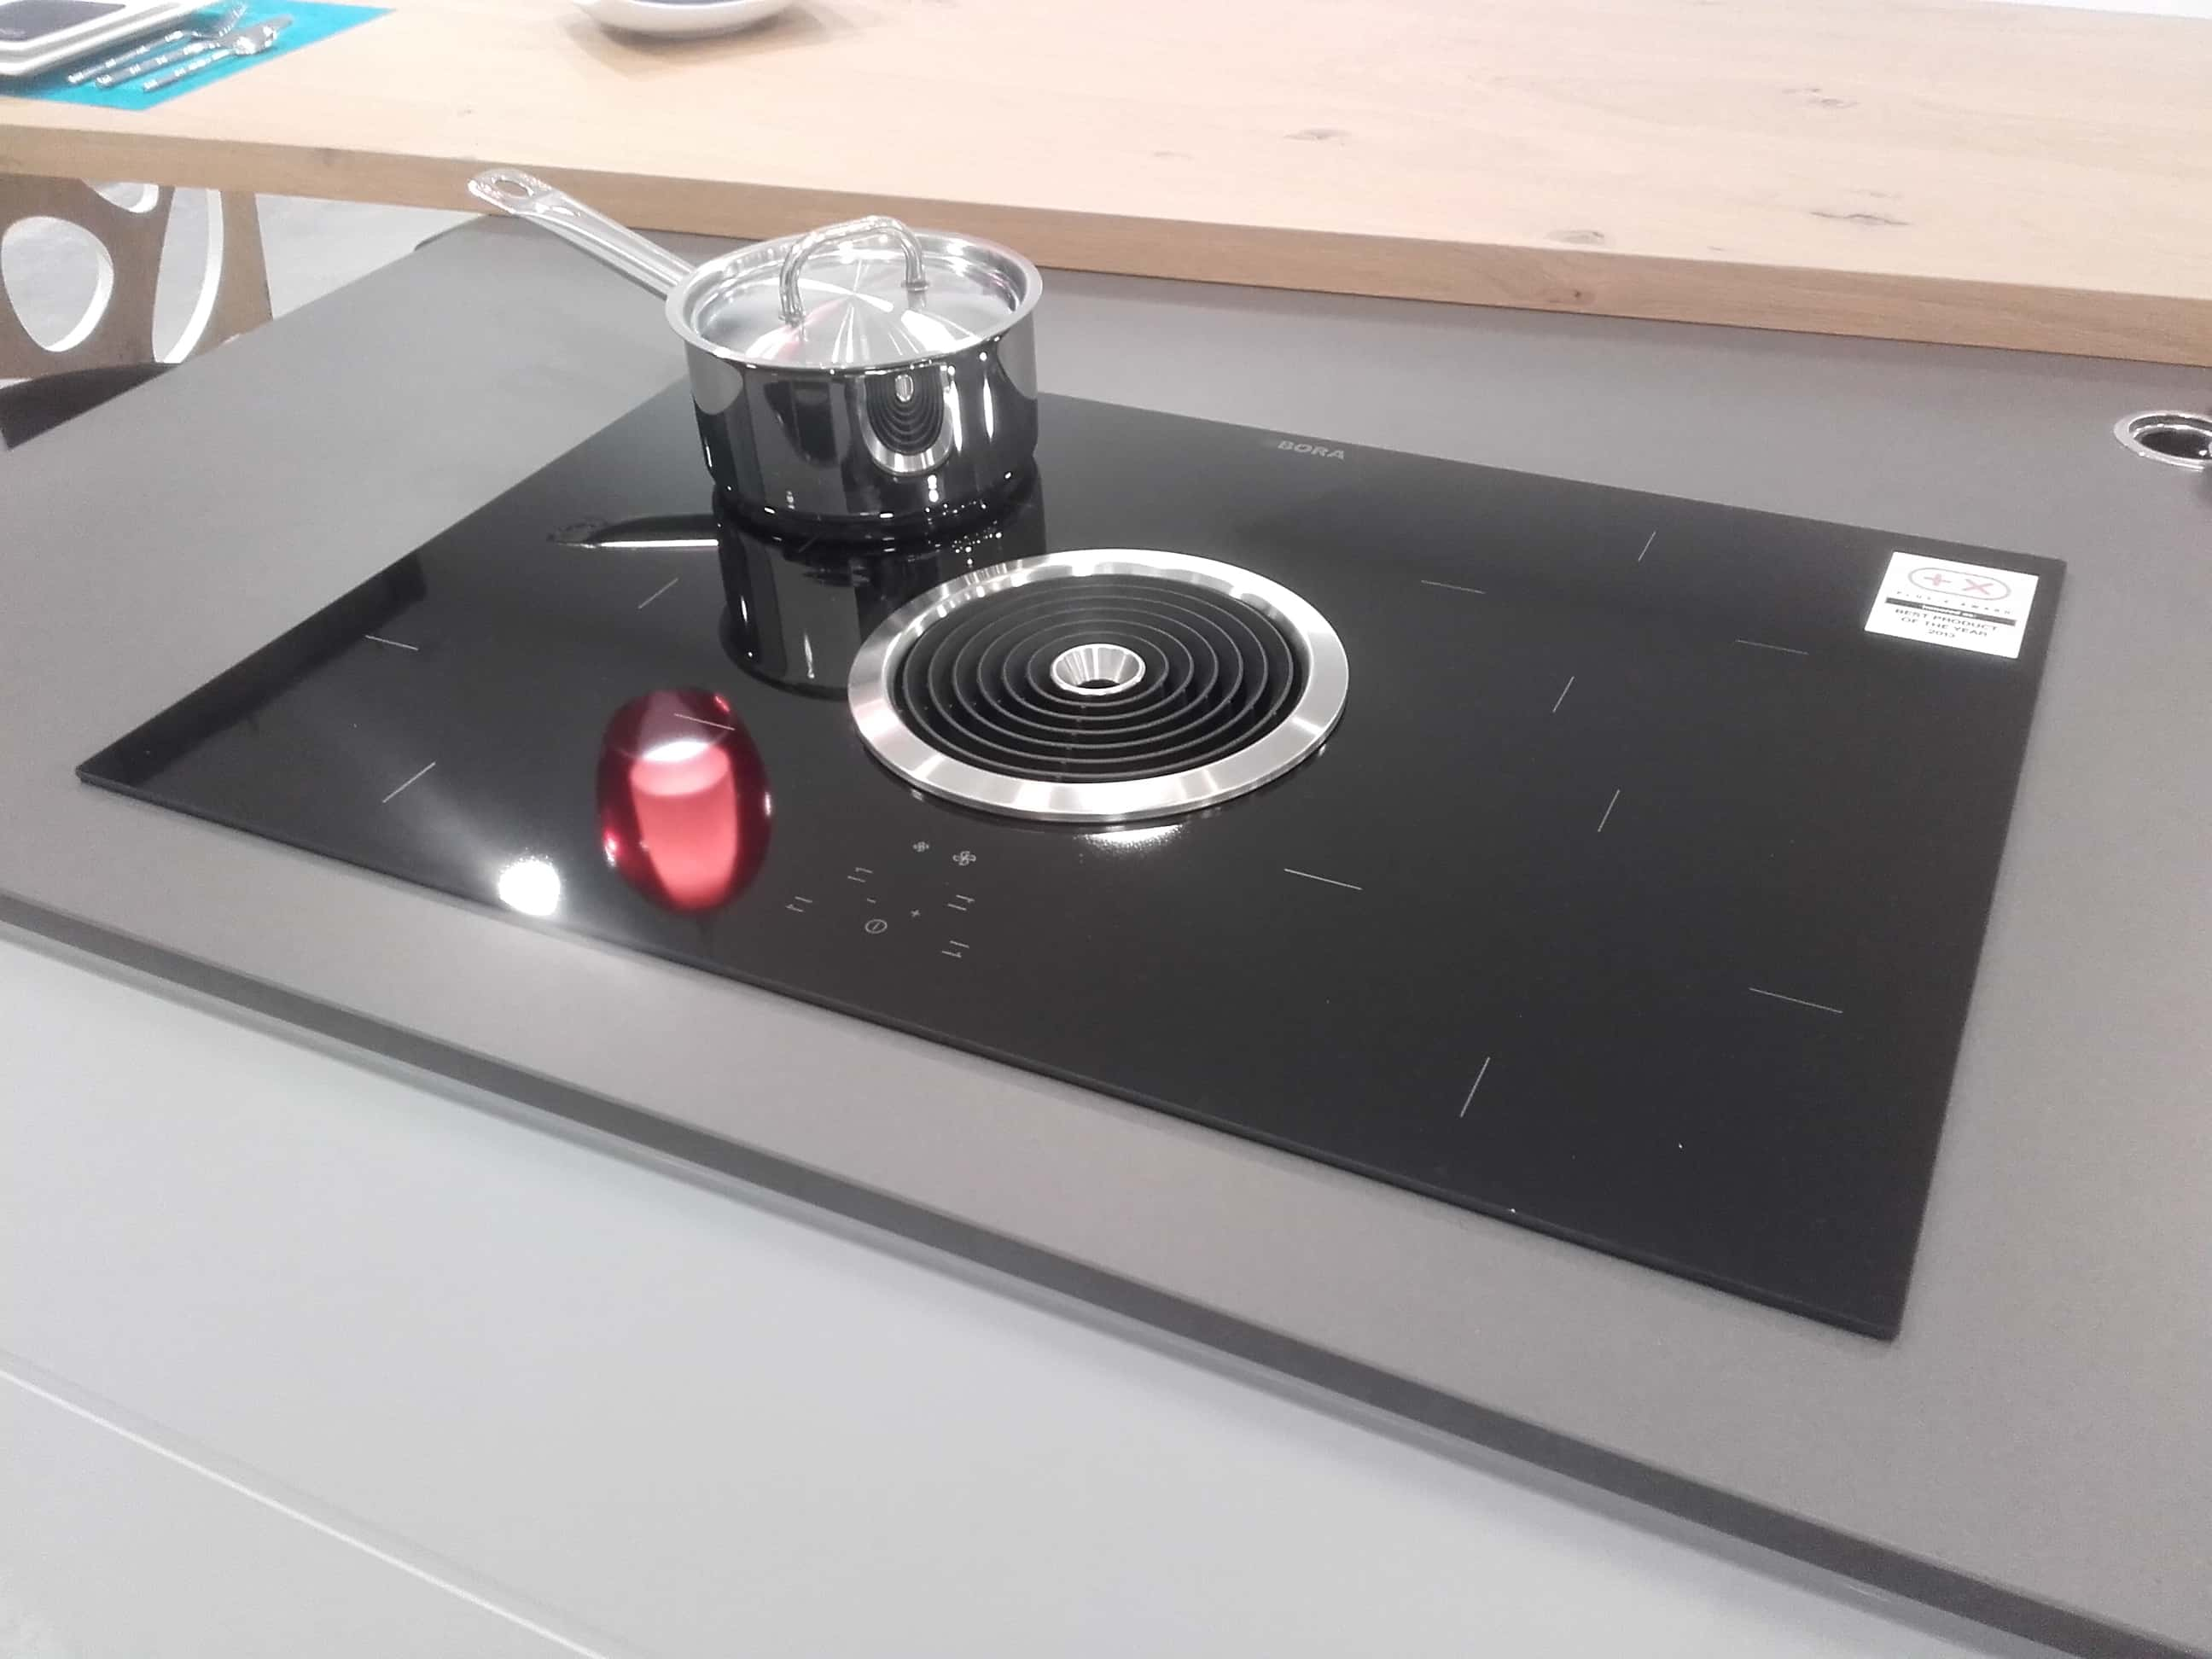 Table de cuisson induction avec dispositif aspirant BORA BASIC, cuisiniste Pornic 44.